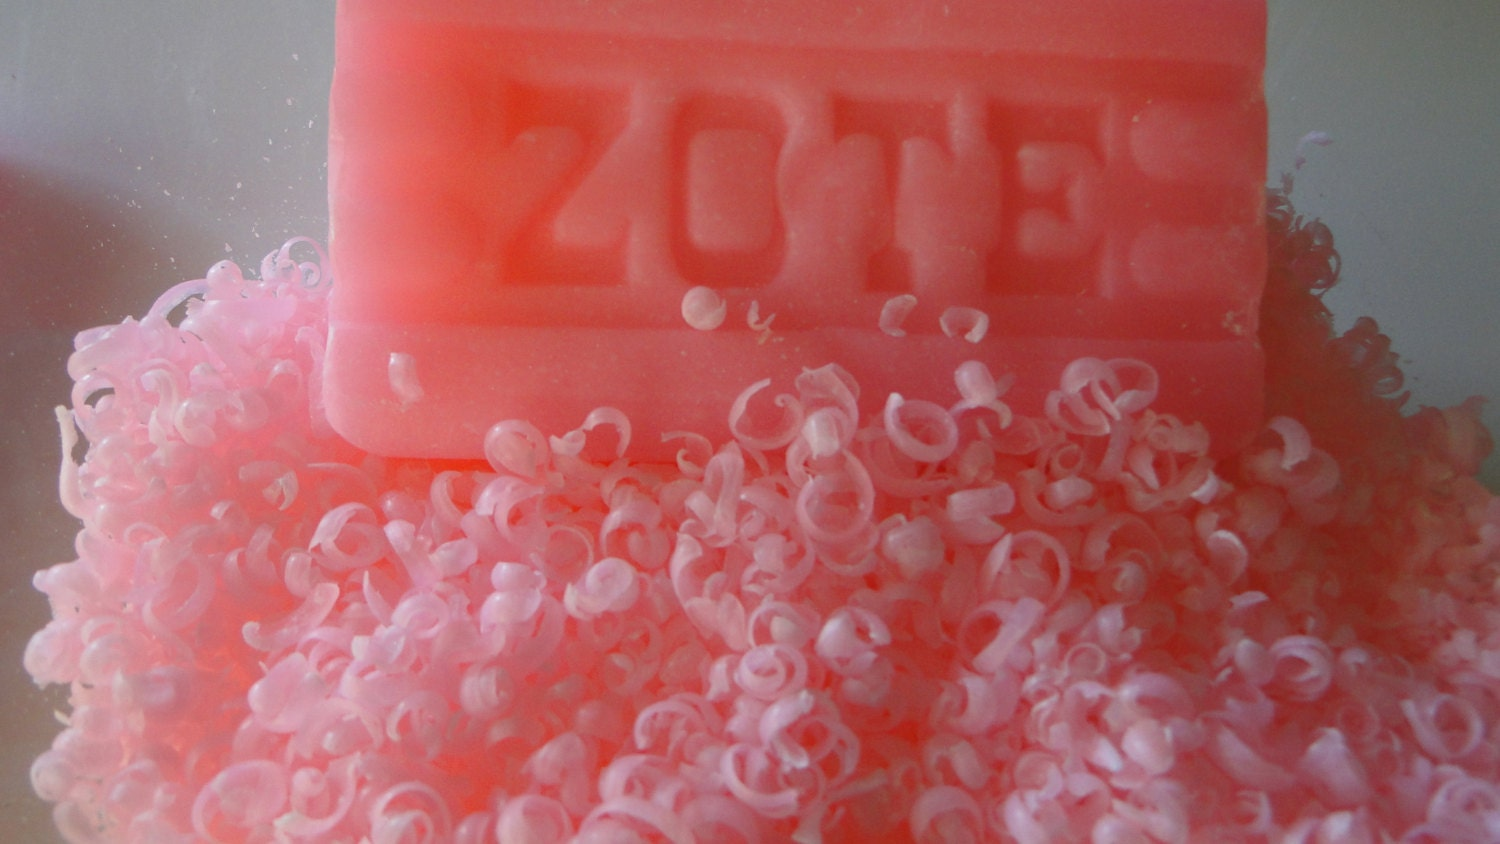 Pink Zote Flakes For Homemade Laundry Detergent And By